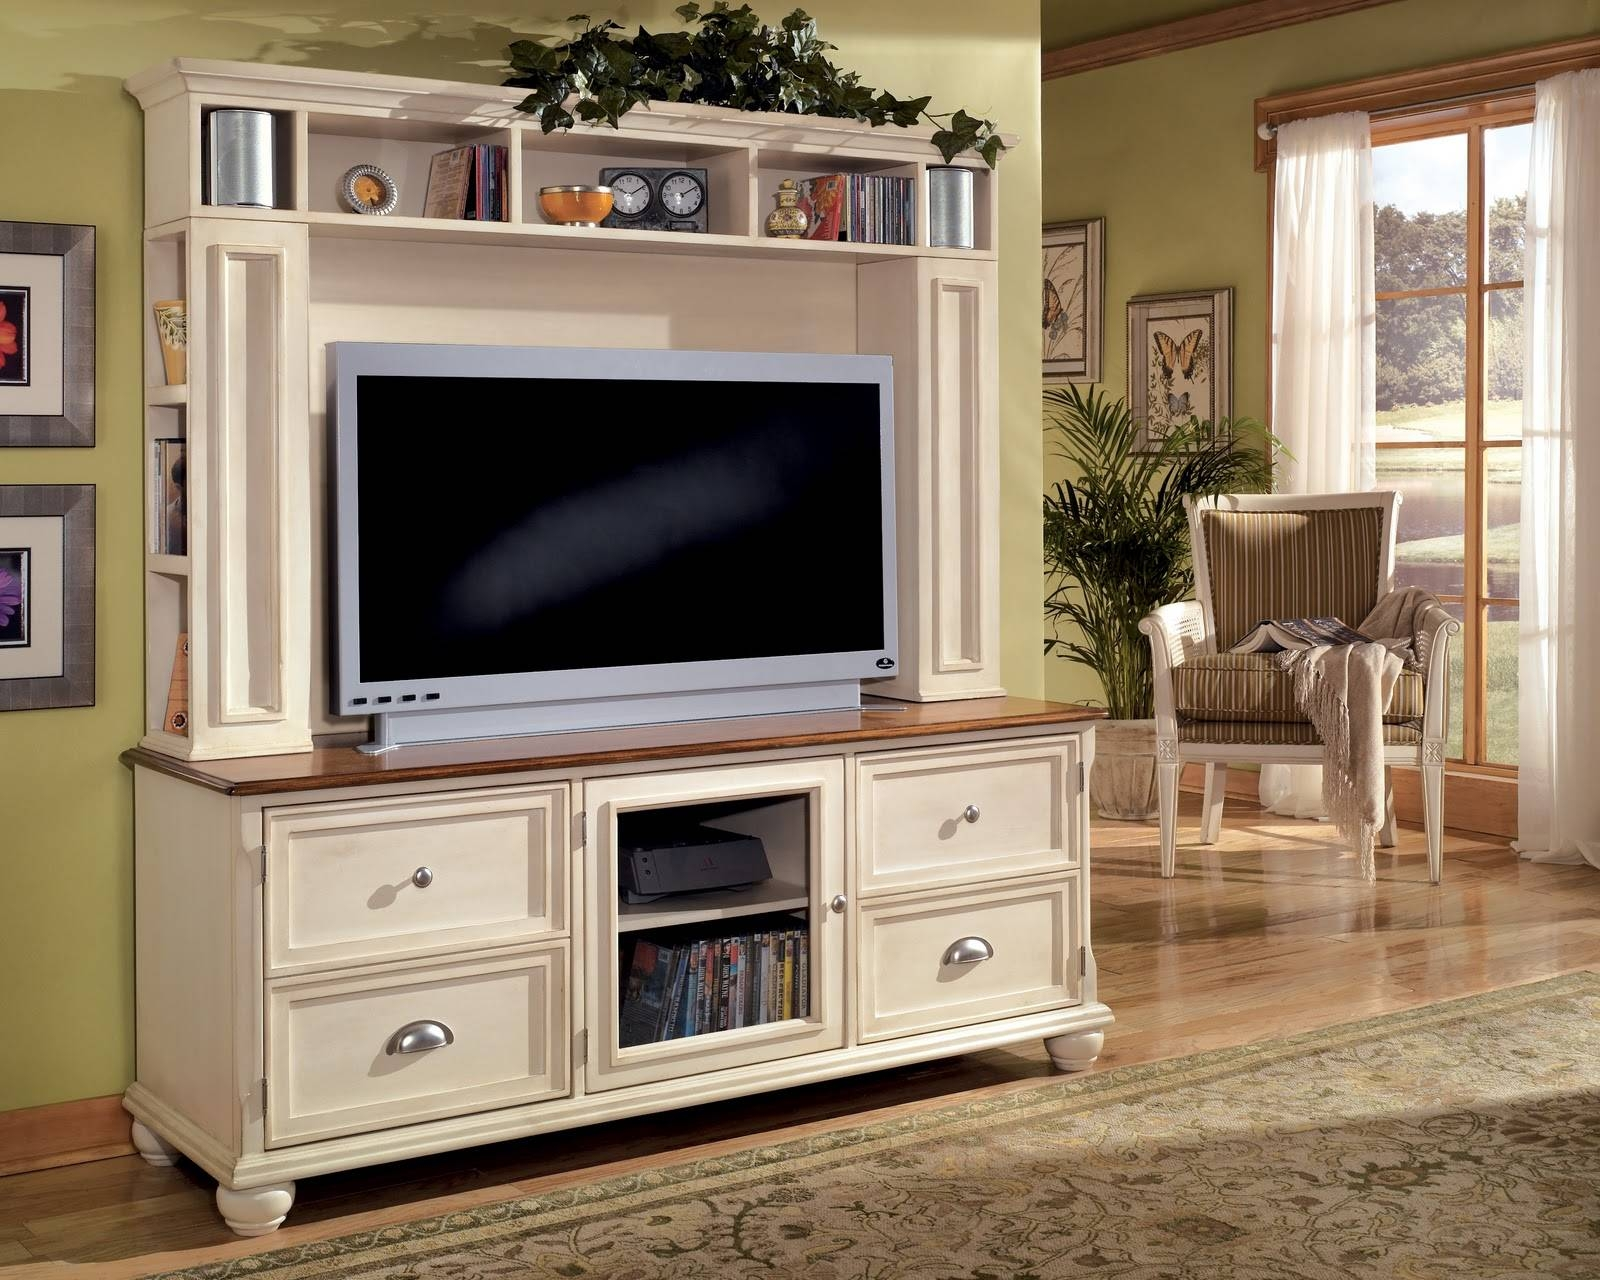 Furniture. White Wood French Country Style Big Screen Tv Stand with regard to Country Style Tv Cabinets (Image 7 of 15)